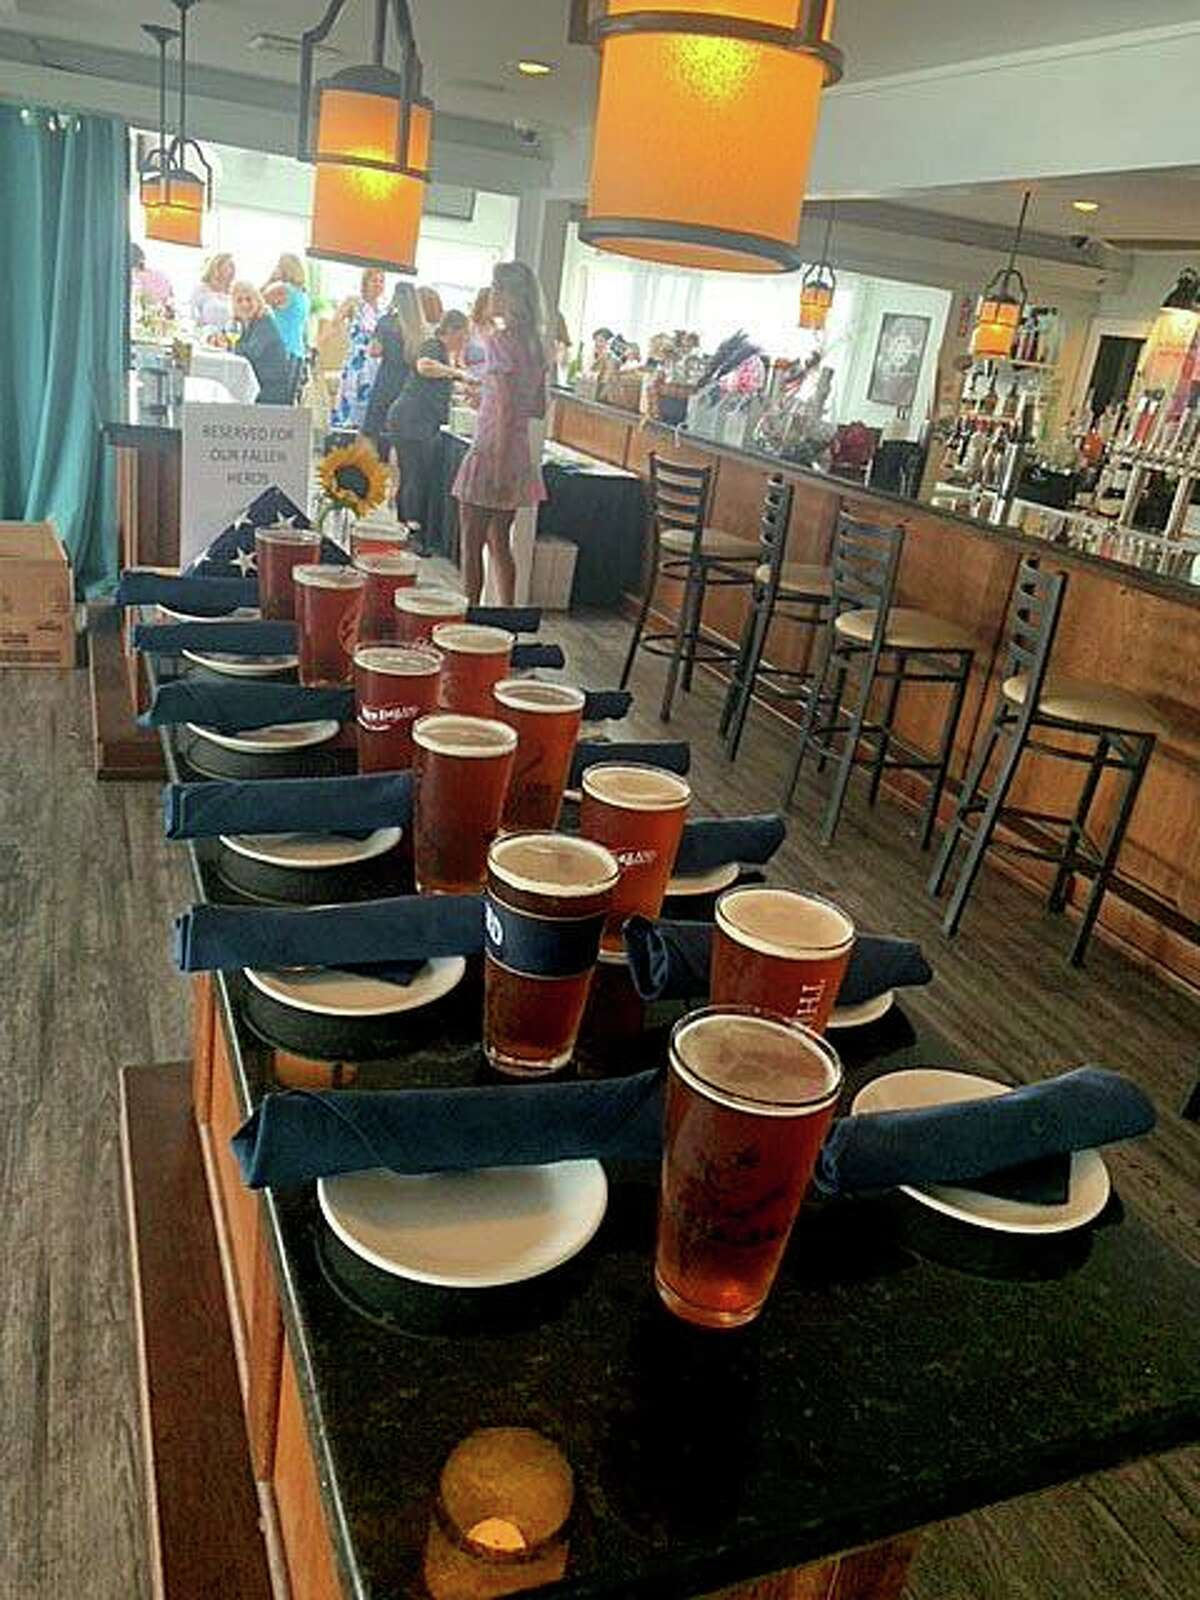 """Amid the table settings at Guilford Mooring Restaurant, poured pints of Thimble American Ale and an American flag folded for burial, was a sign that read, """"Reserved for our Fallen Heroes."""""""